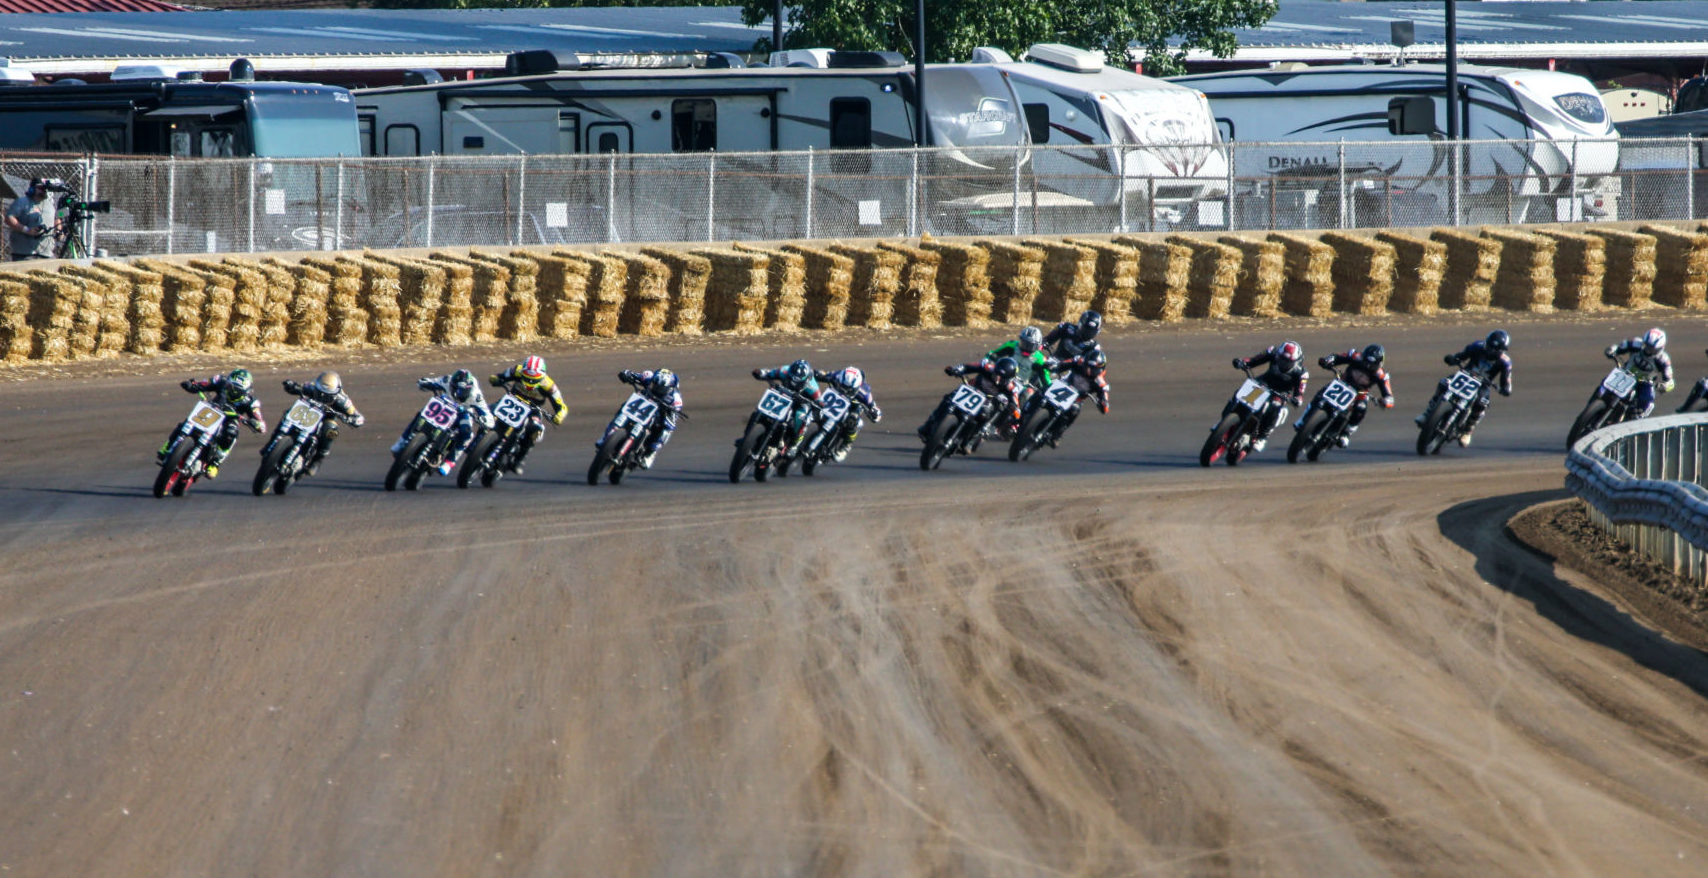 American Flat Track action from the Indy Mile. Photo by Scott Hunter, courtesy AFT.